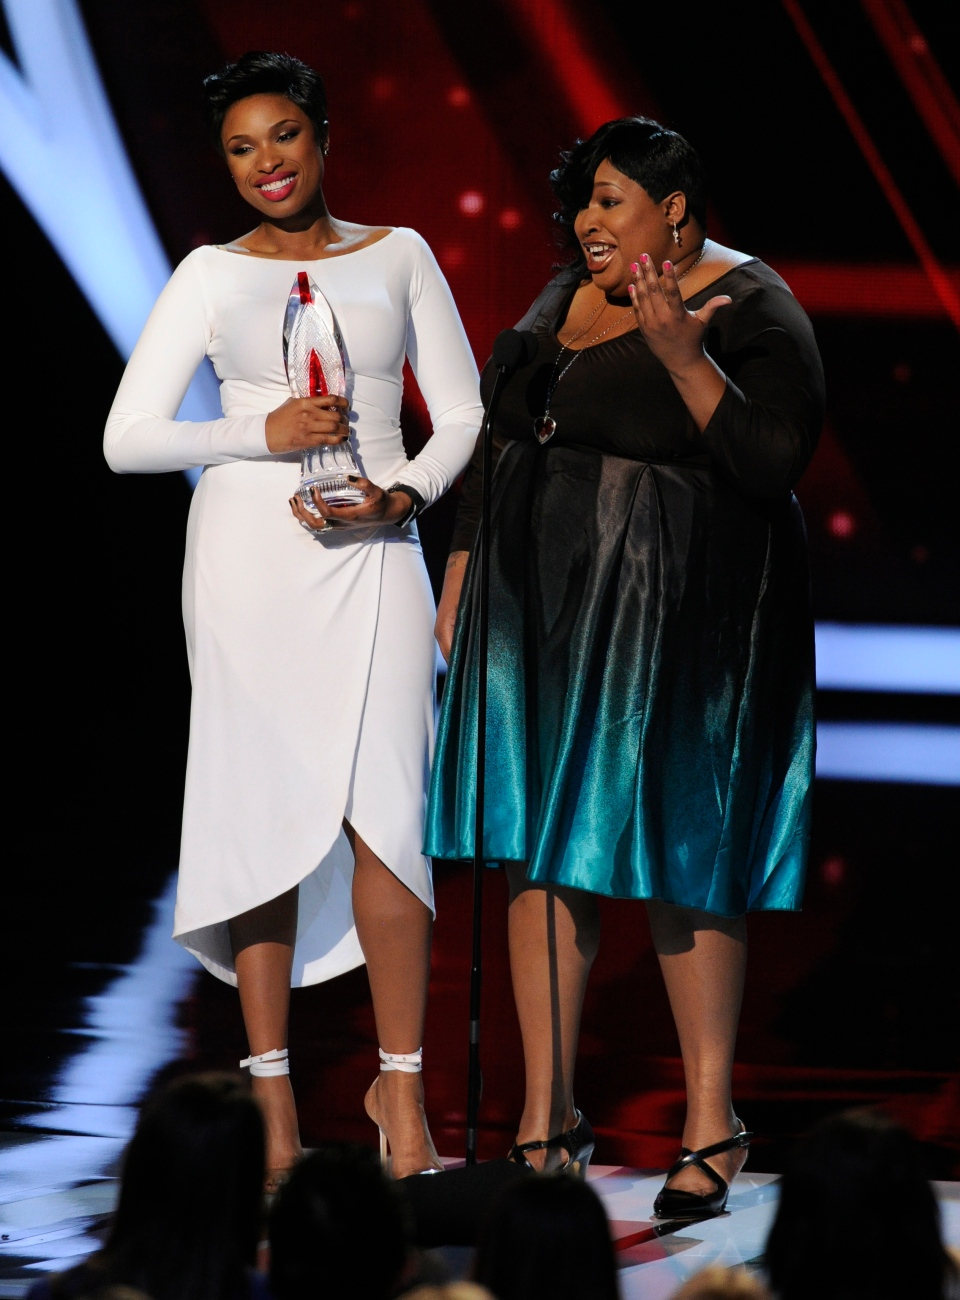 Jennifer Hudson, left, and Julia Hudson accept the favorite humanitarian award at the 40th annual People's Choice Awards at the Nokia Theatre L.A. Live on Wednesday, Jan. 8, 2014, in Los Angeles. (Photo by Chris Pizzello/Invision/AP)